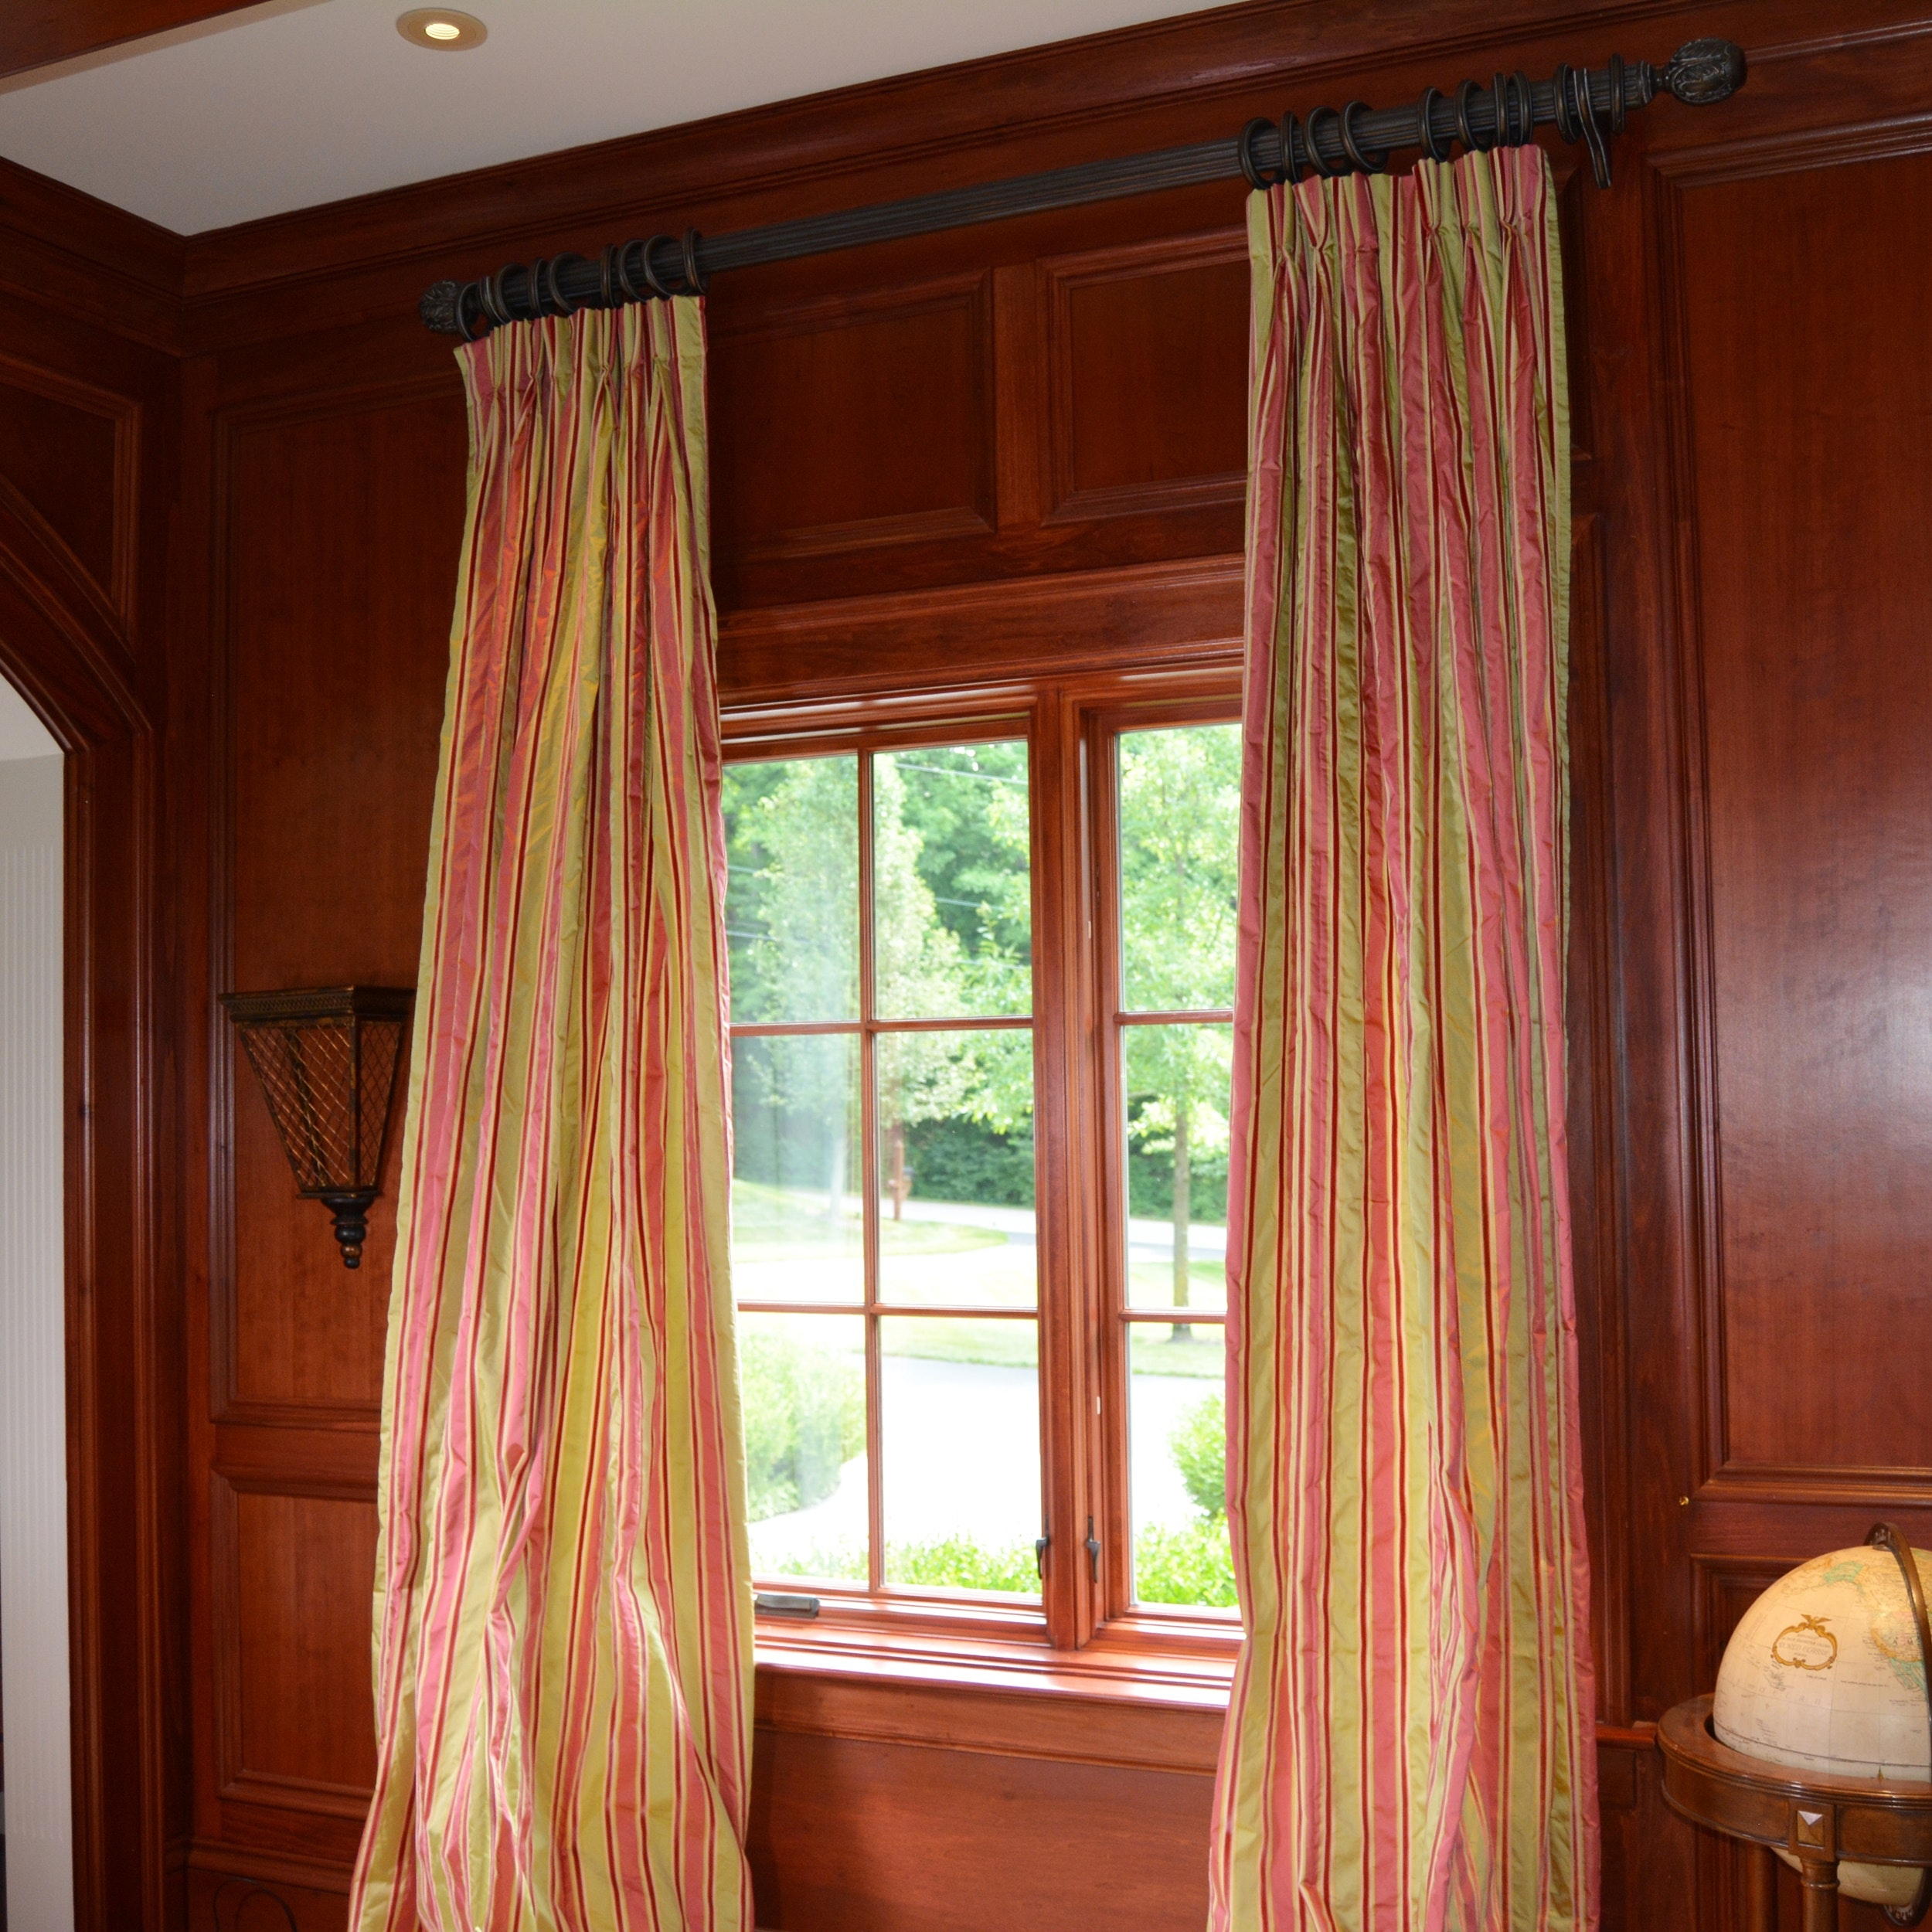 Four Celadon and Rose Striped Lined Drapery Panels